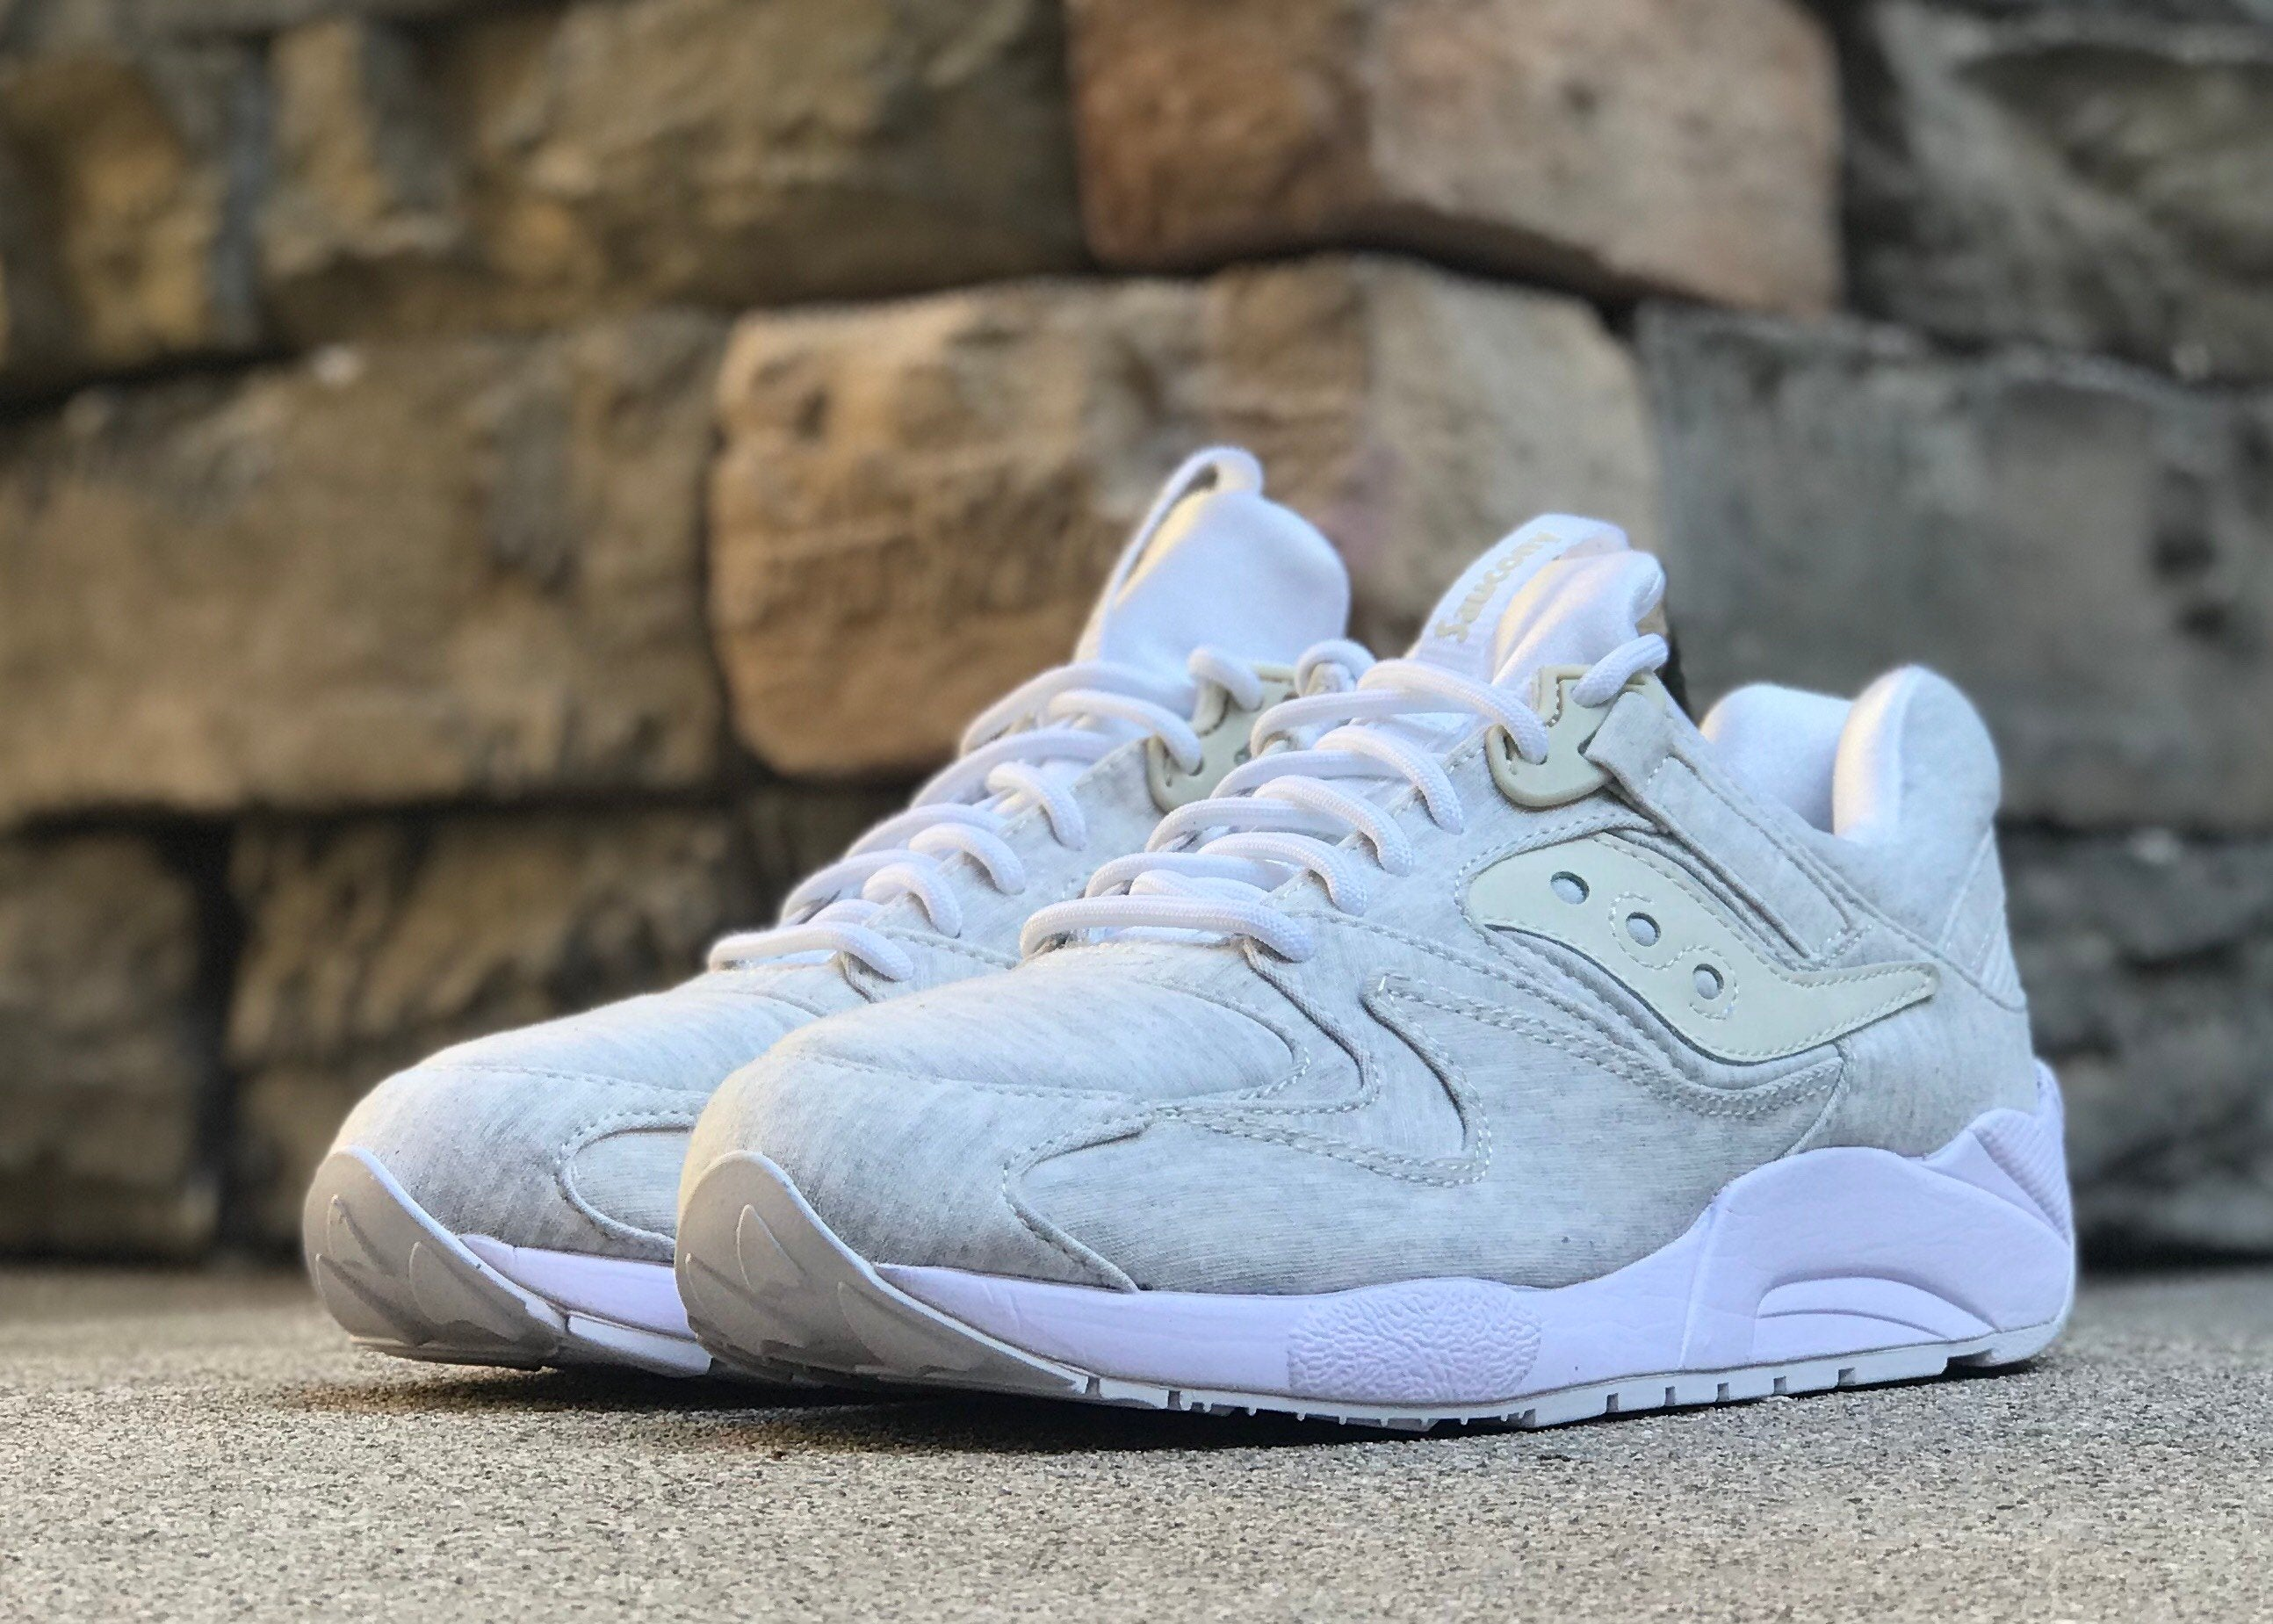 SAUCONY GRID 9000 HT JERSEY - WHITE